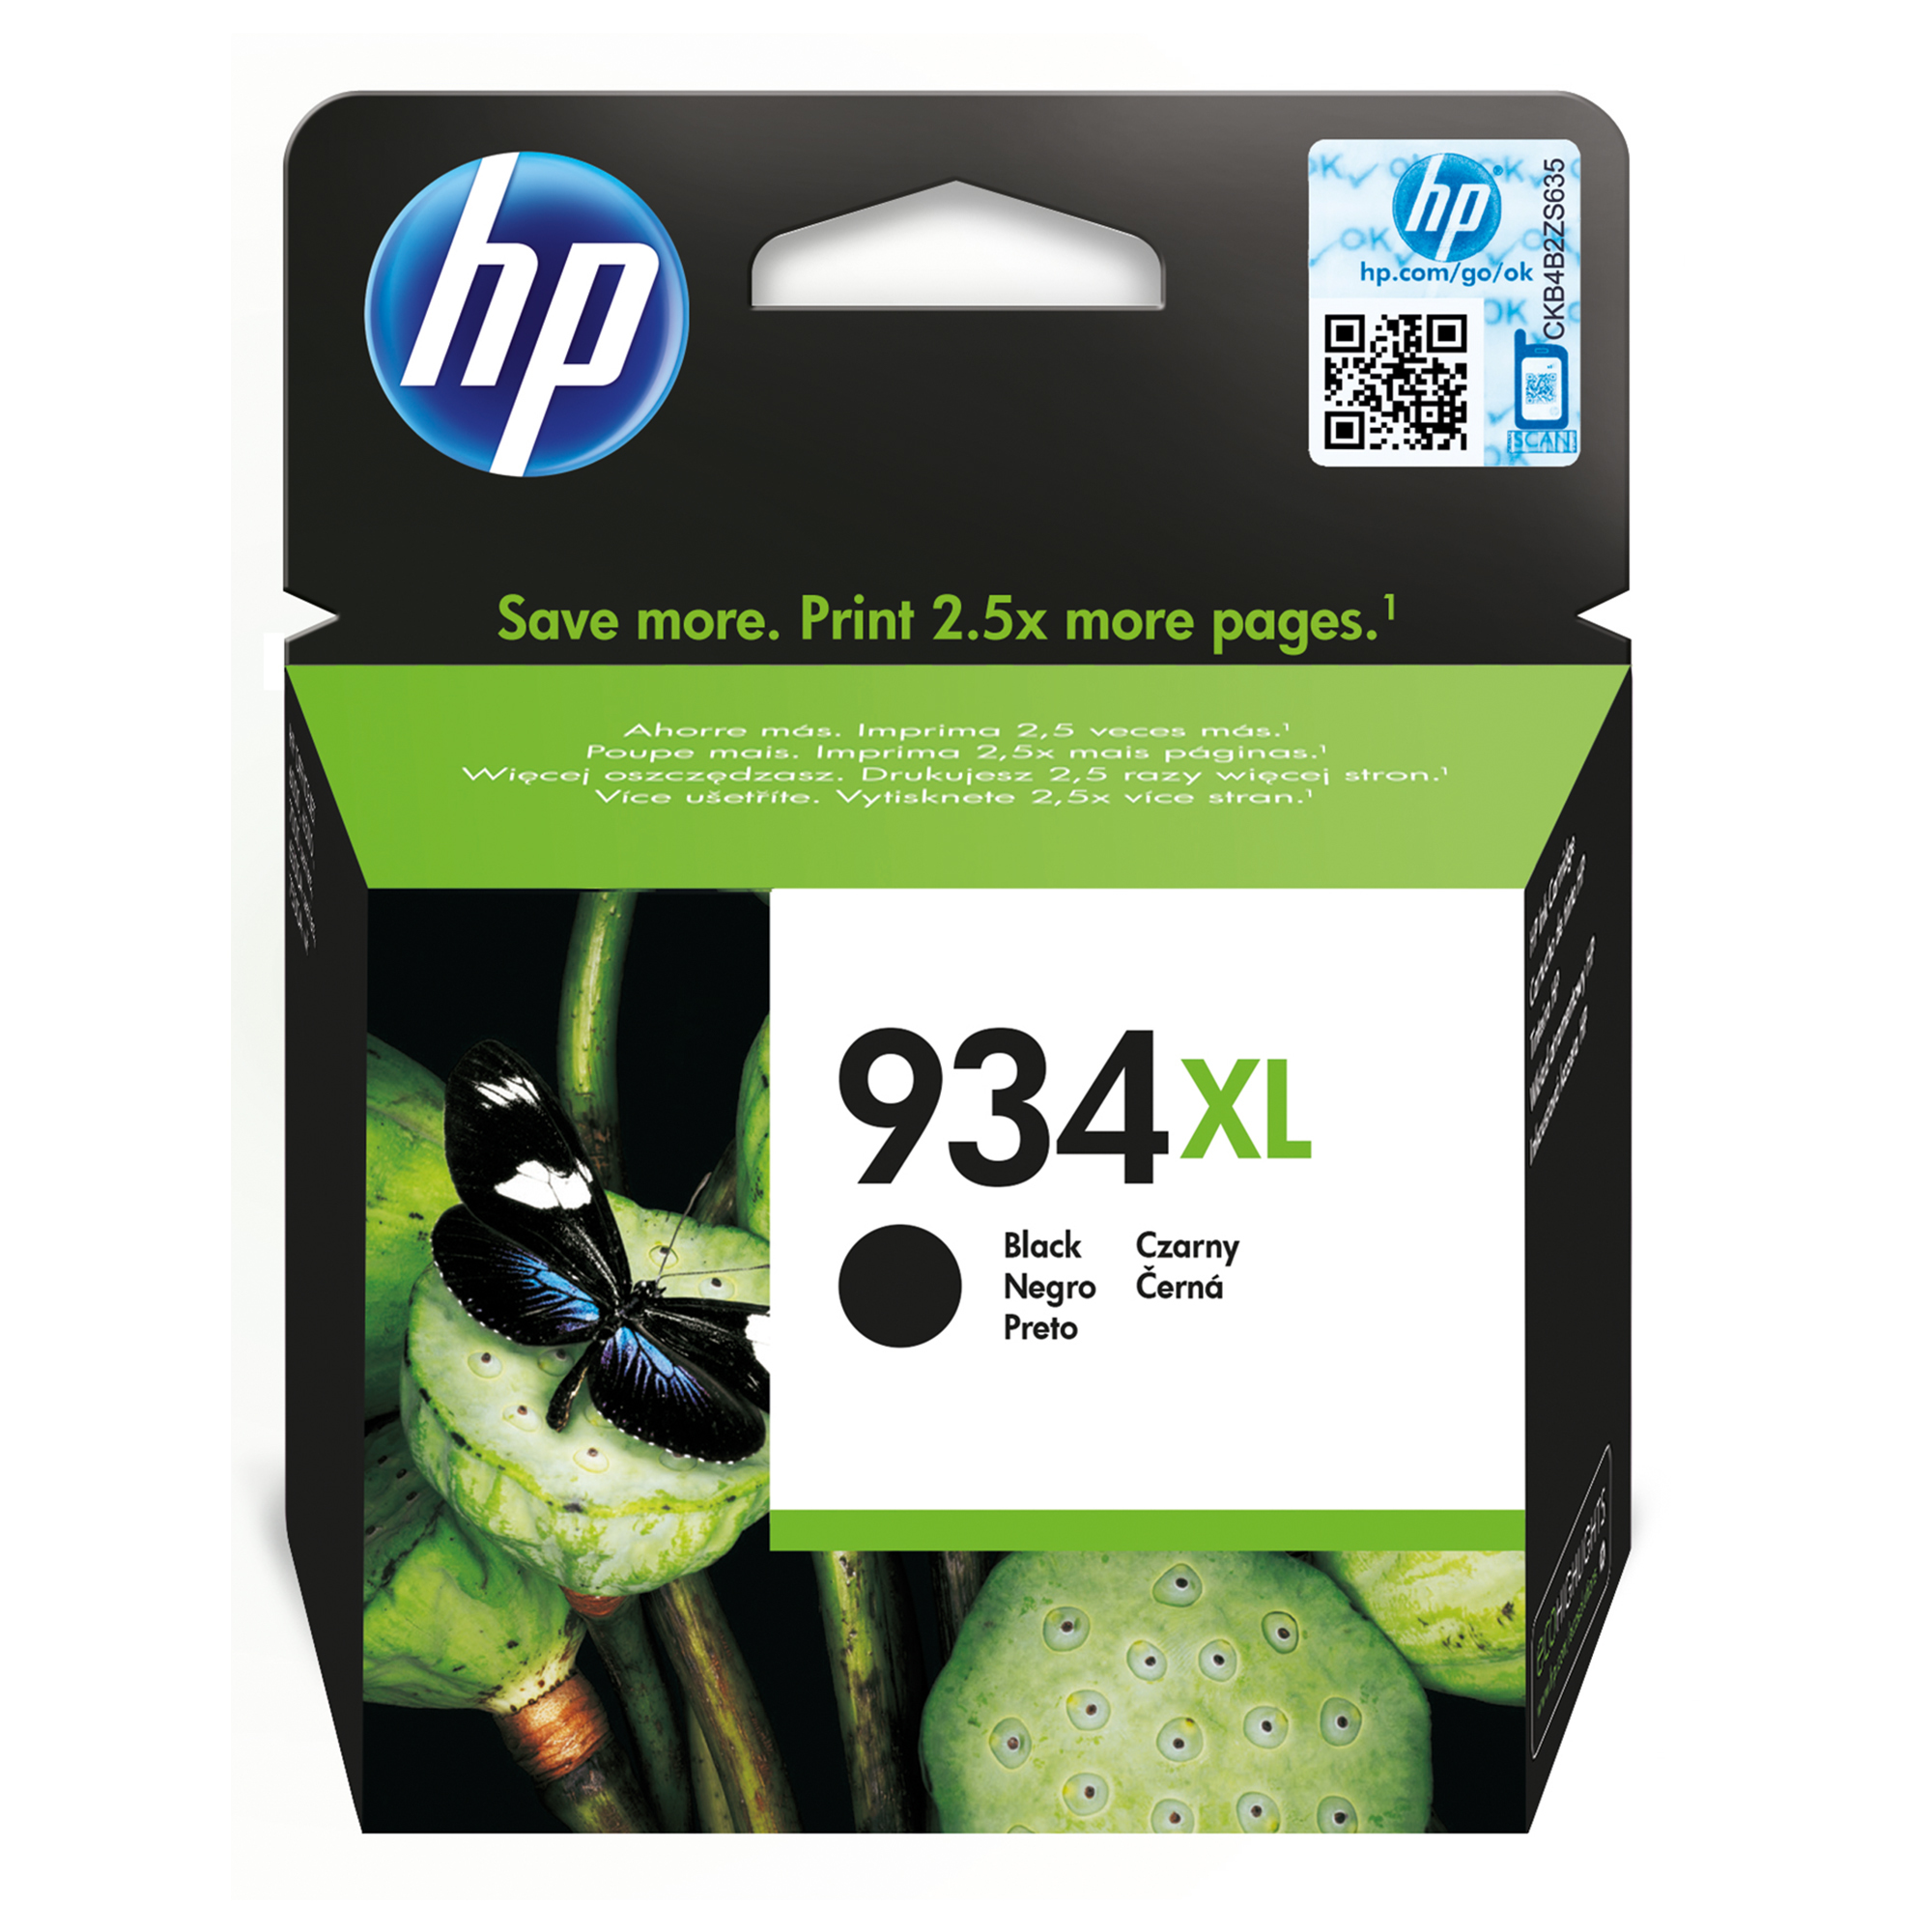 Hp - Inkjet Supply (pl1n) Mvs    Ink Cartridge No 934xl Black        Officejet De Uk Fr It Nl Se Be      C2p23ae#bgx